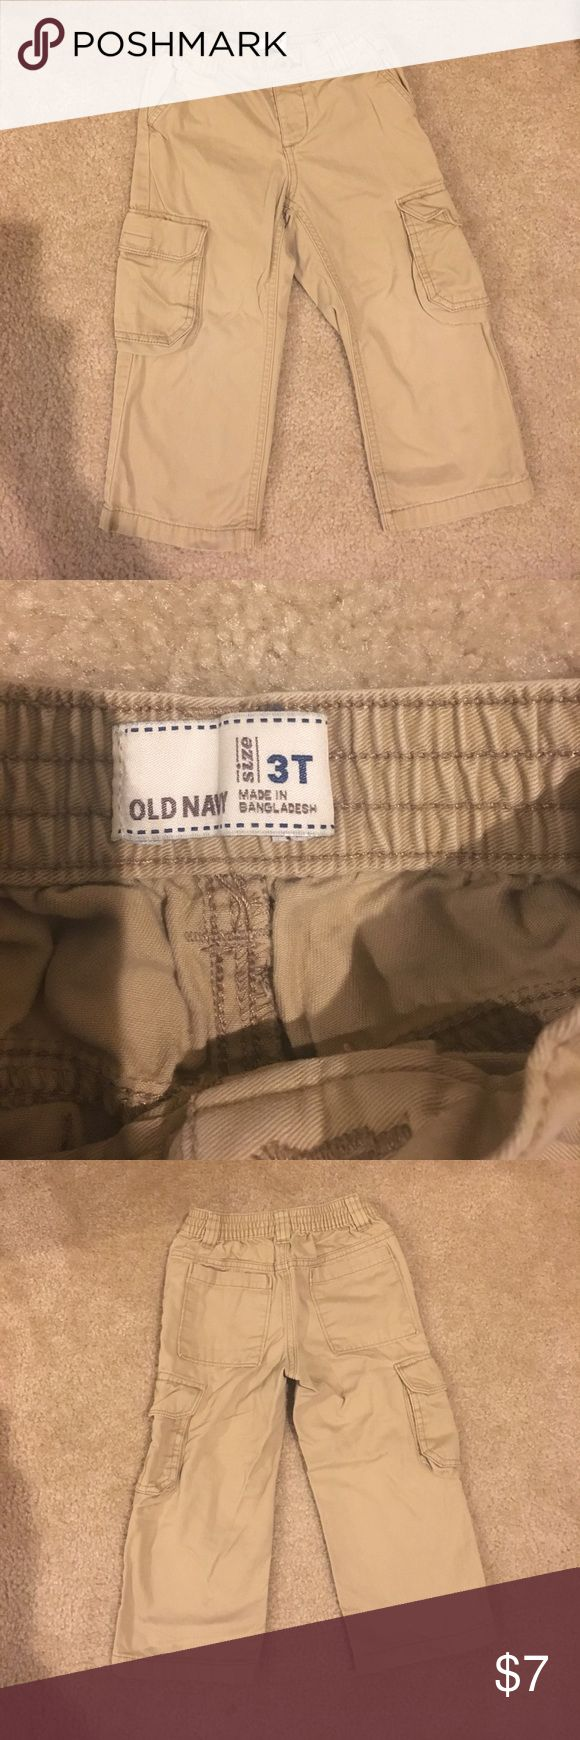 Old navy cargo pants Cute cargo pants with elastic waist, size 3t.  Great condition! Old Navy Bottoms